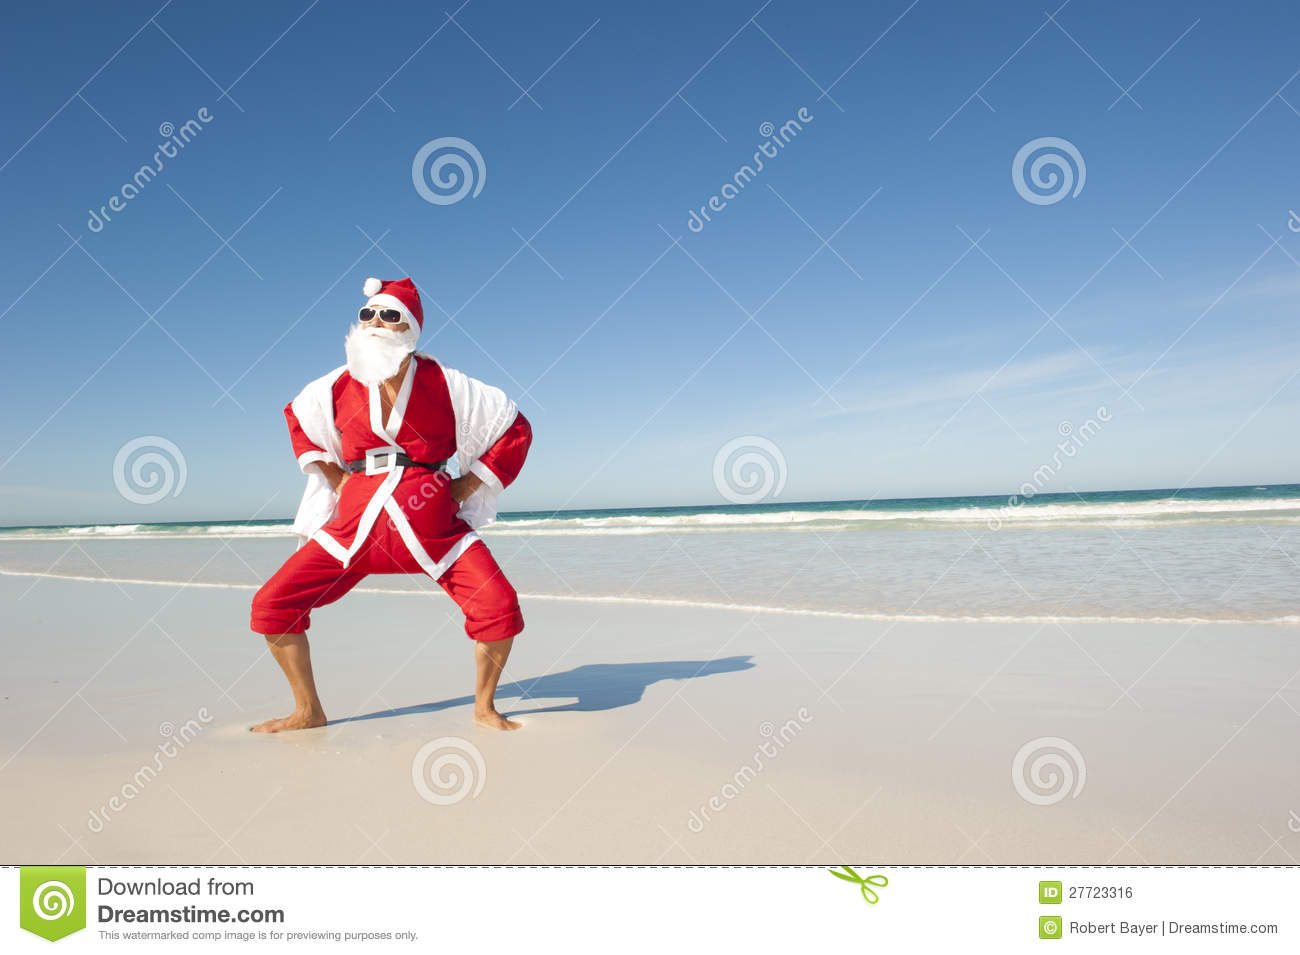 santa claus christmas holiday beach iv - Christmas Holiday Pictures